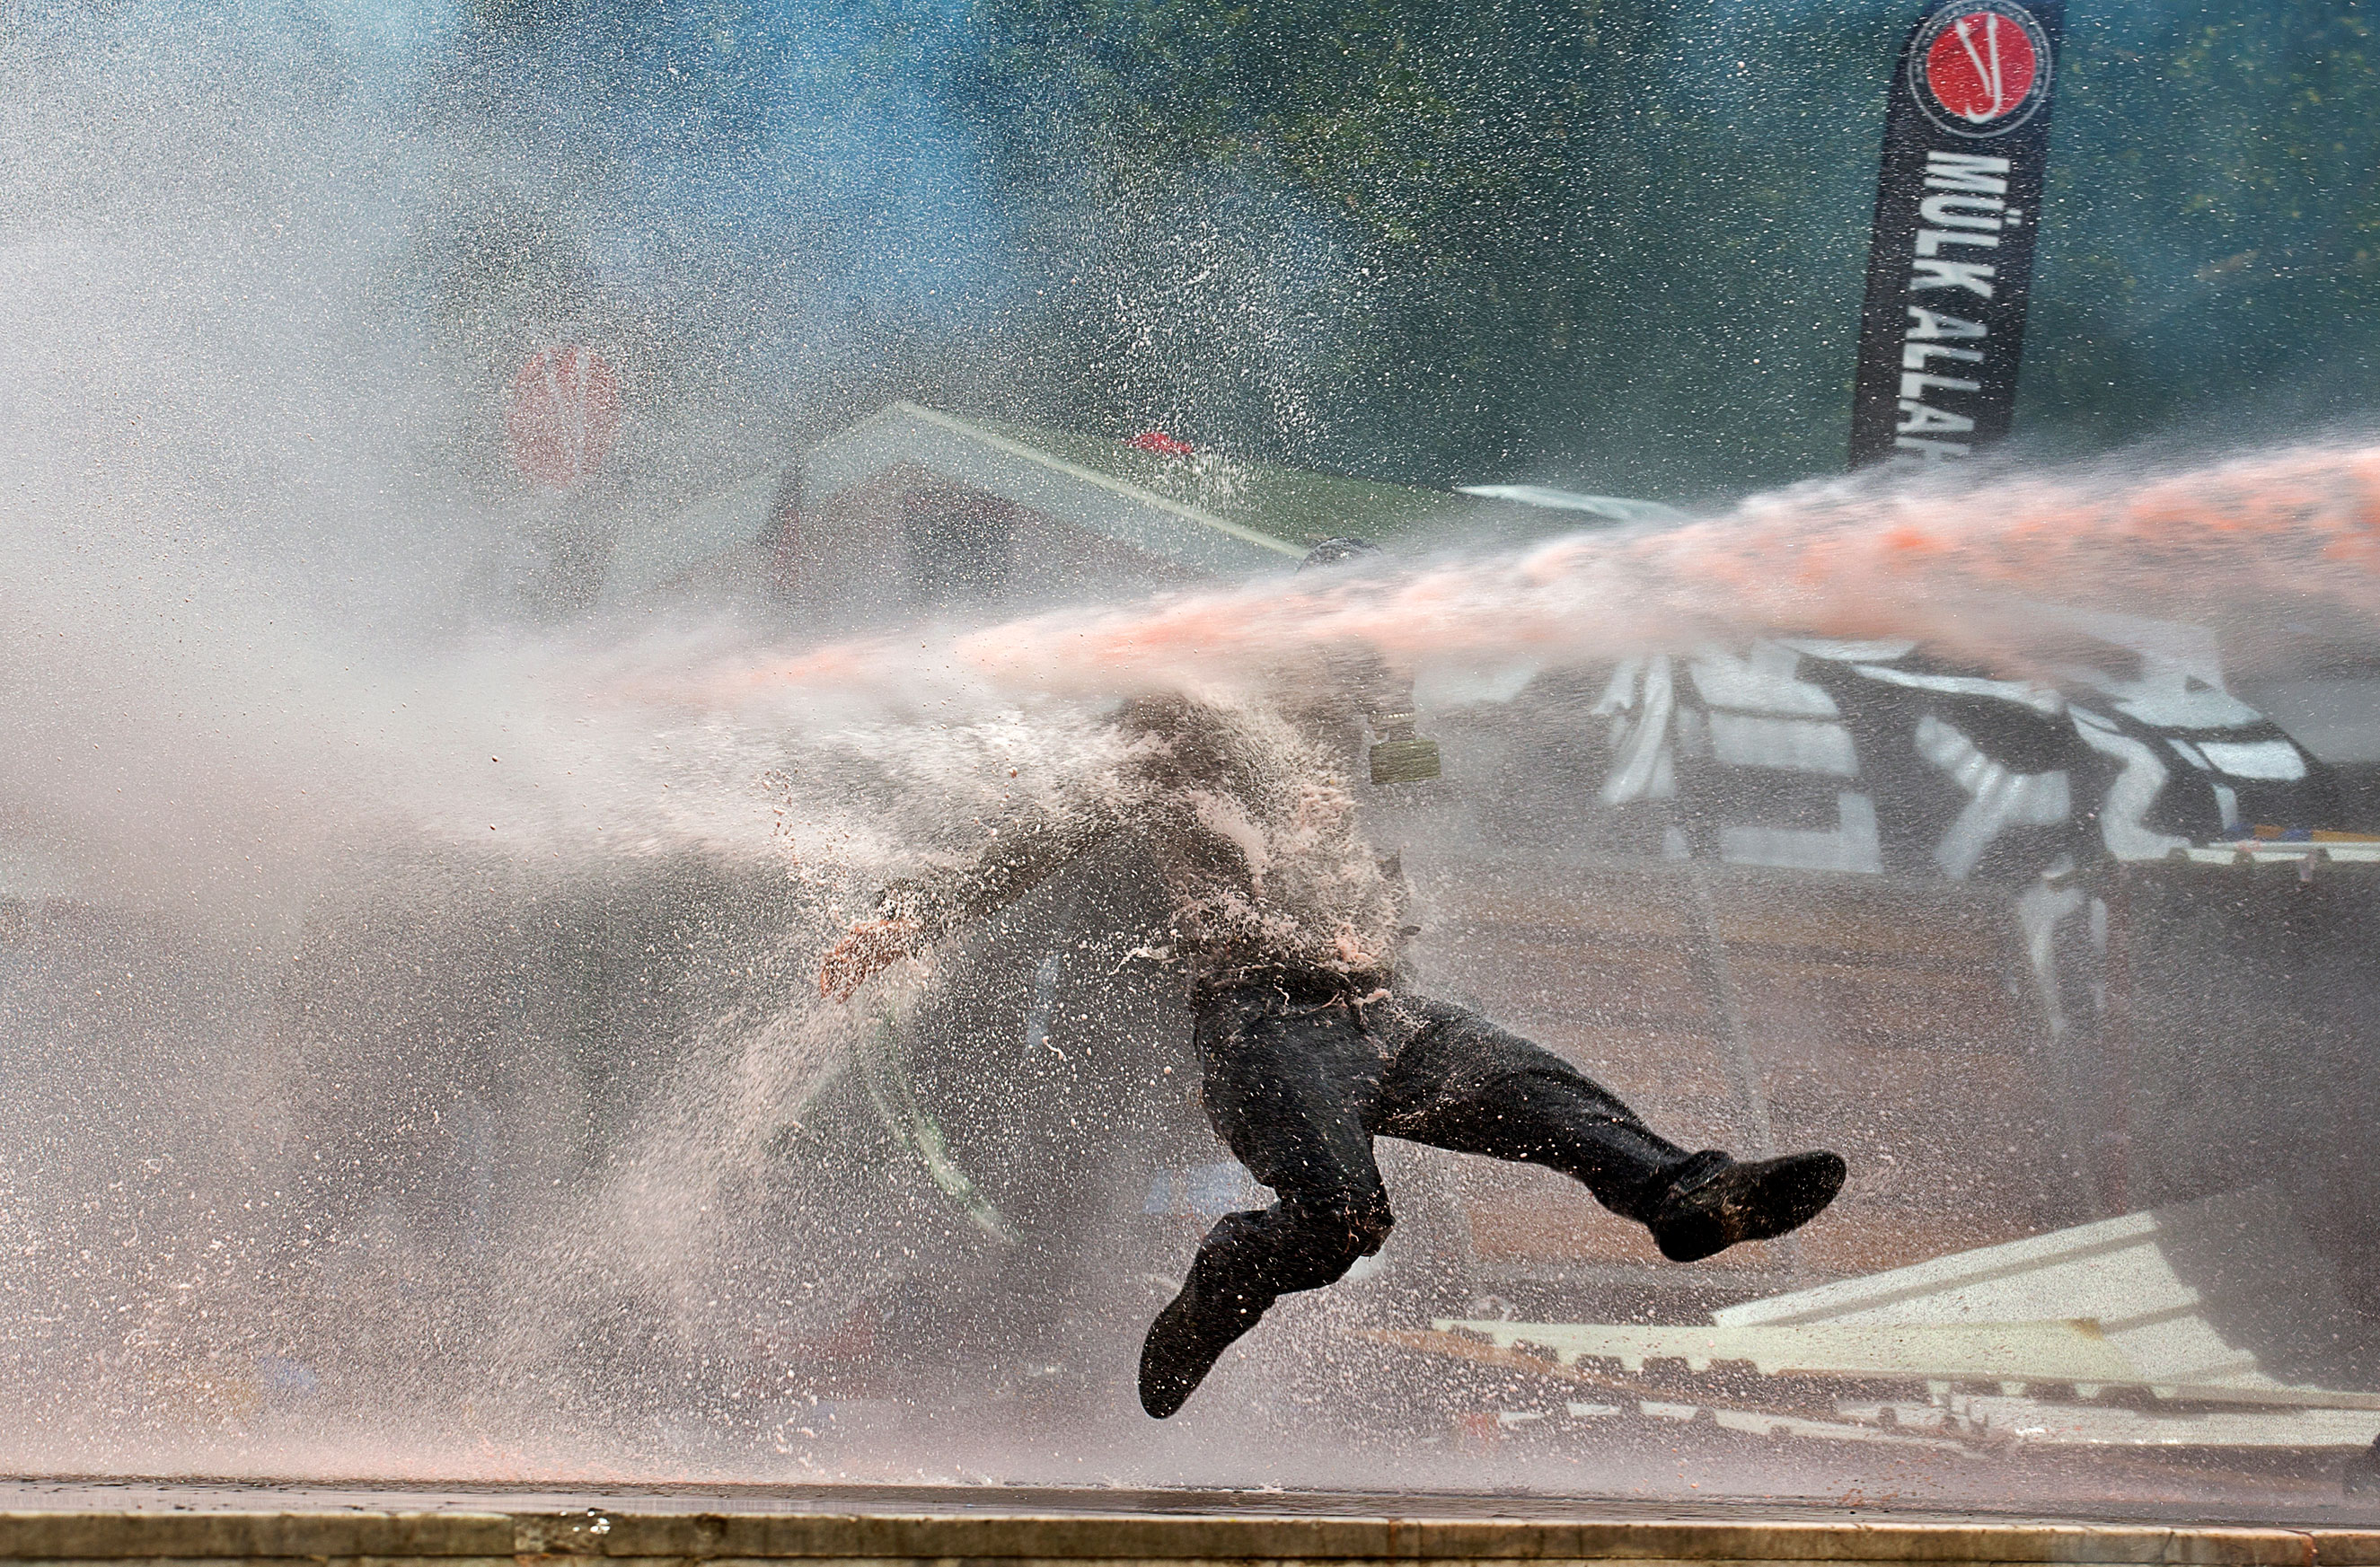 A protester is hit by a water cannon during clashes in Taksim Square in Istanbul on June 11, 2013.